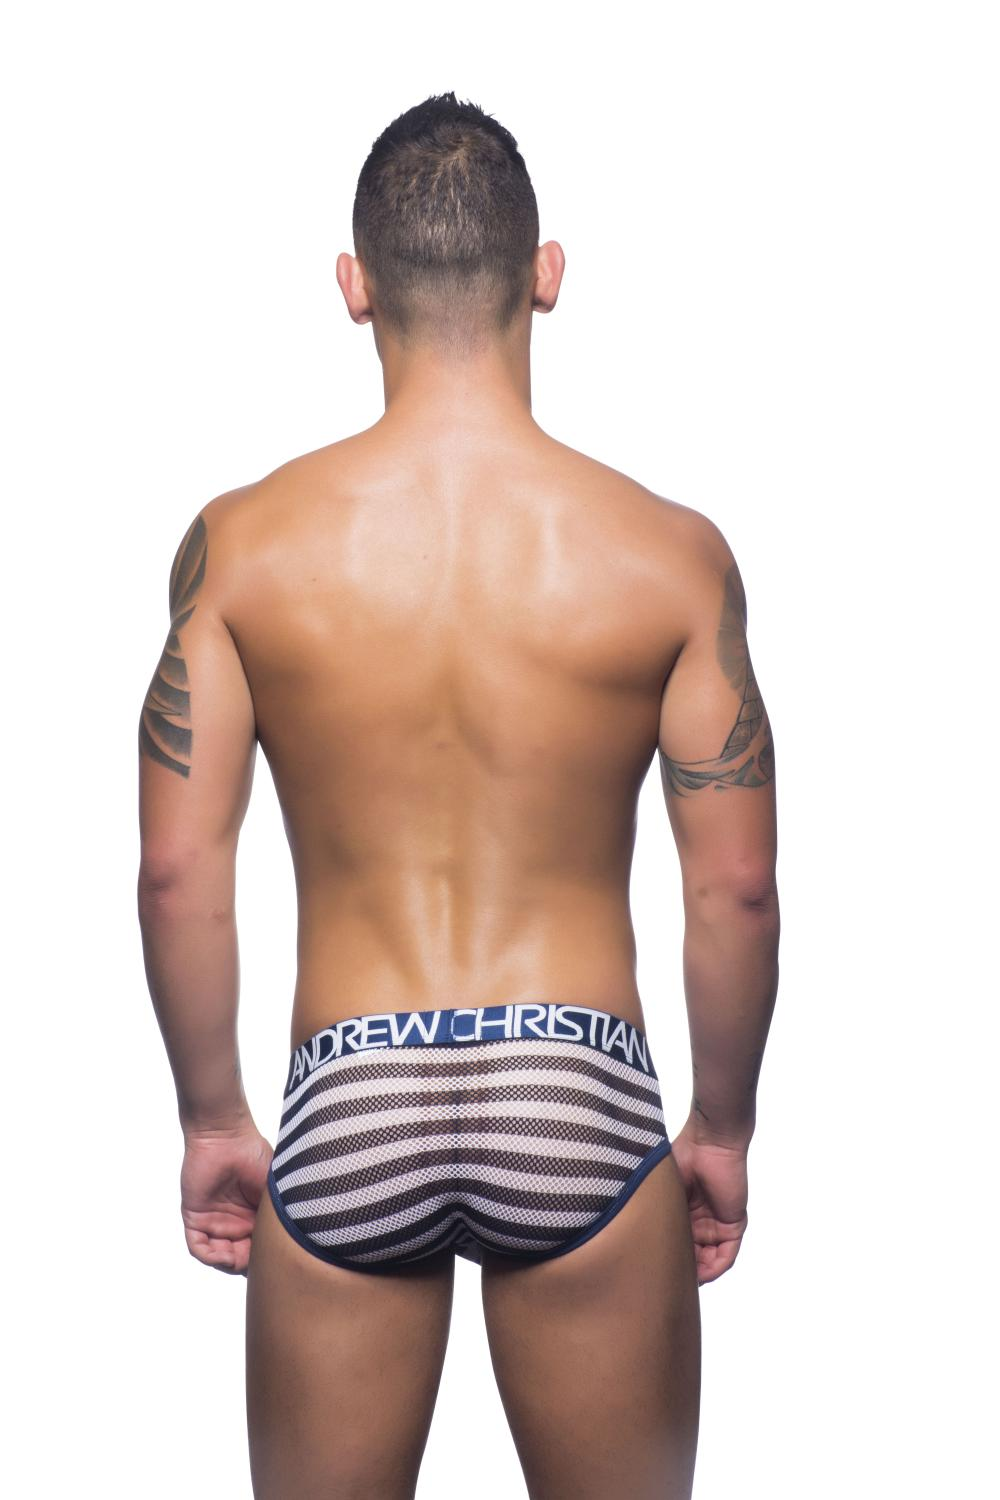 Nautical Net Brief - With Almost Naked Tech.